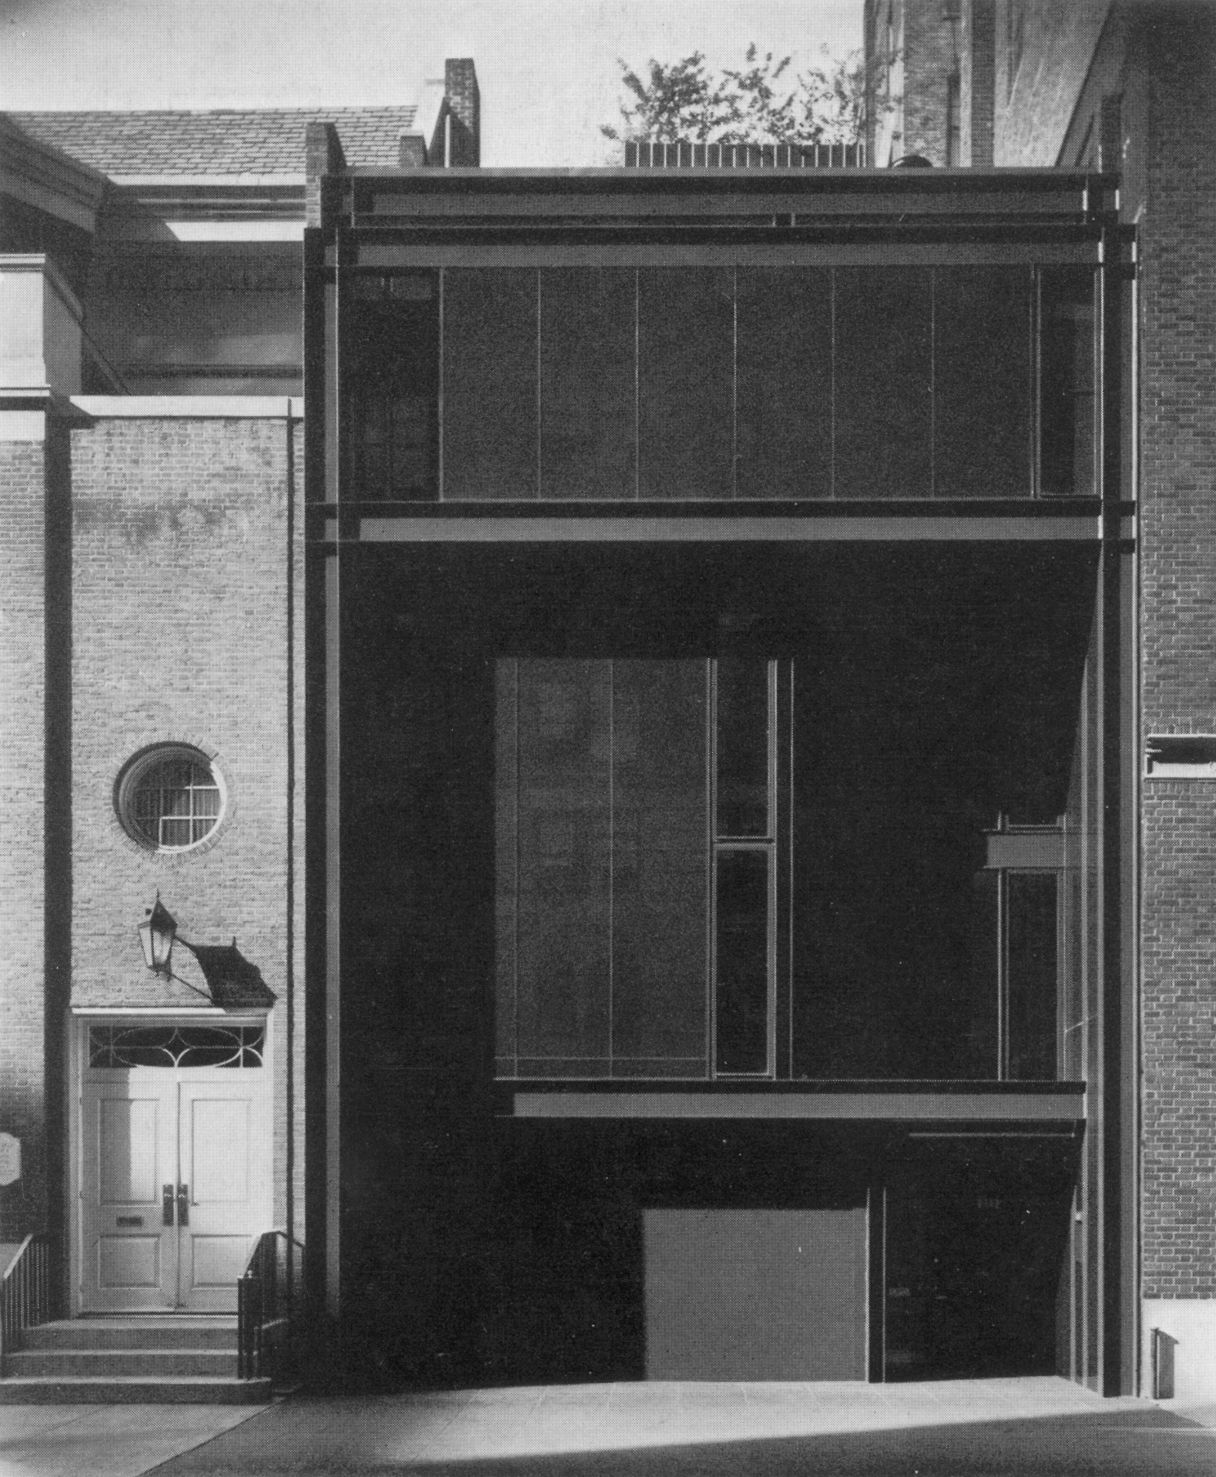 Paul rudolph hirsch holsten house new york 1968 for Minimalismus im haus buch